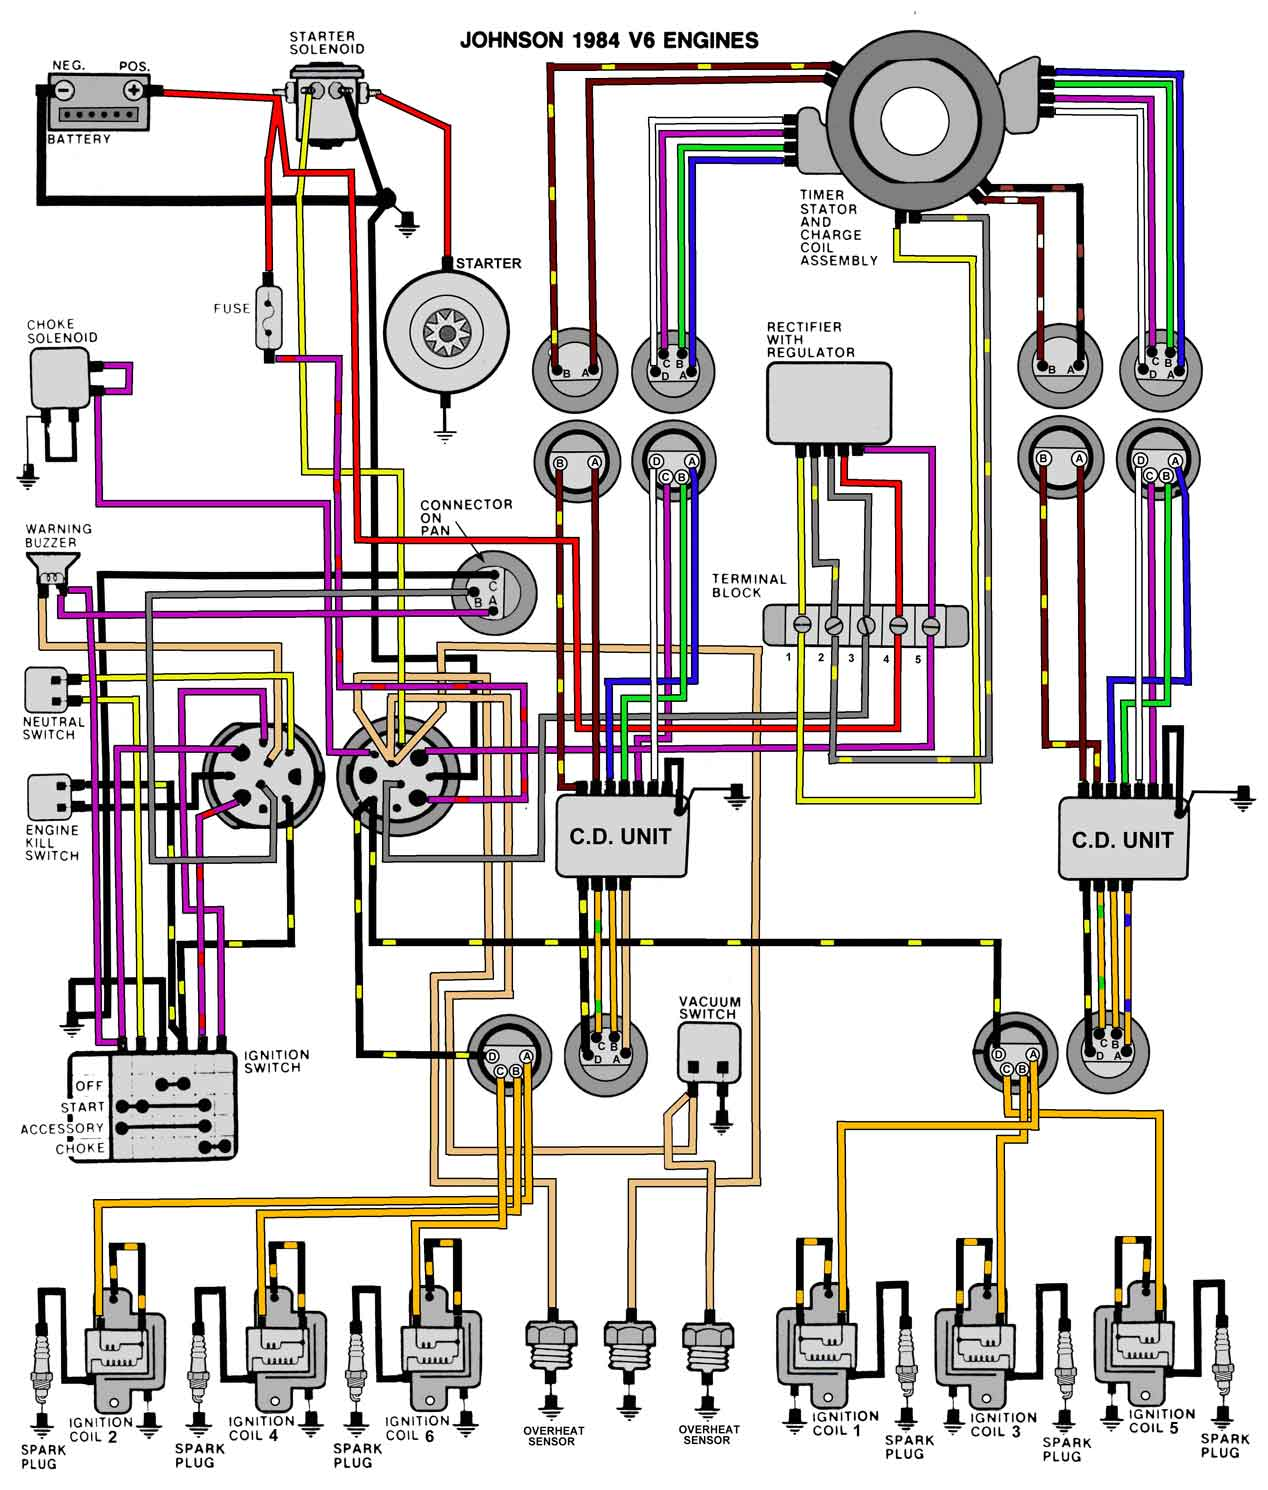 84_V6 boat motor wiring diagram small boat wiring diagram \u2022 wiring Boat Ignition Switch Wiring Diagram at cos-gaming.co